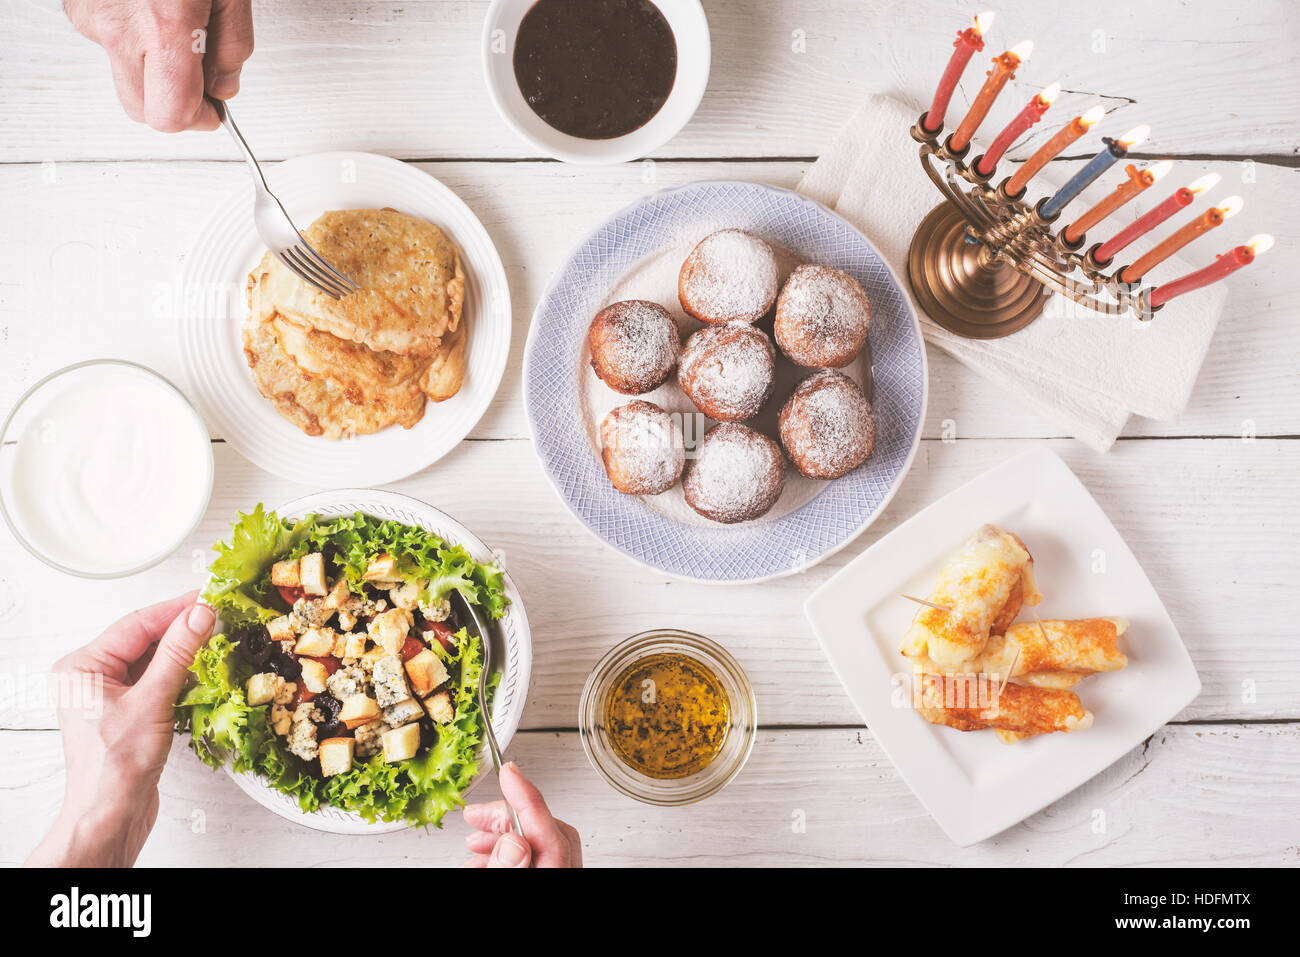 Hanukkah dinner with traditional dishes top view - Stock Image